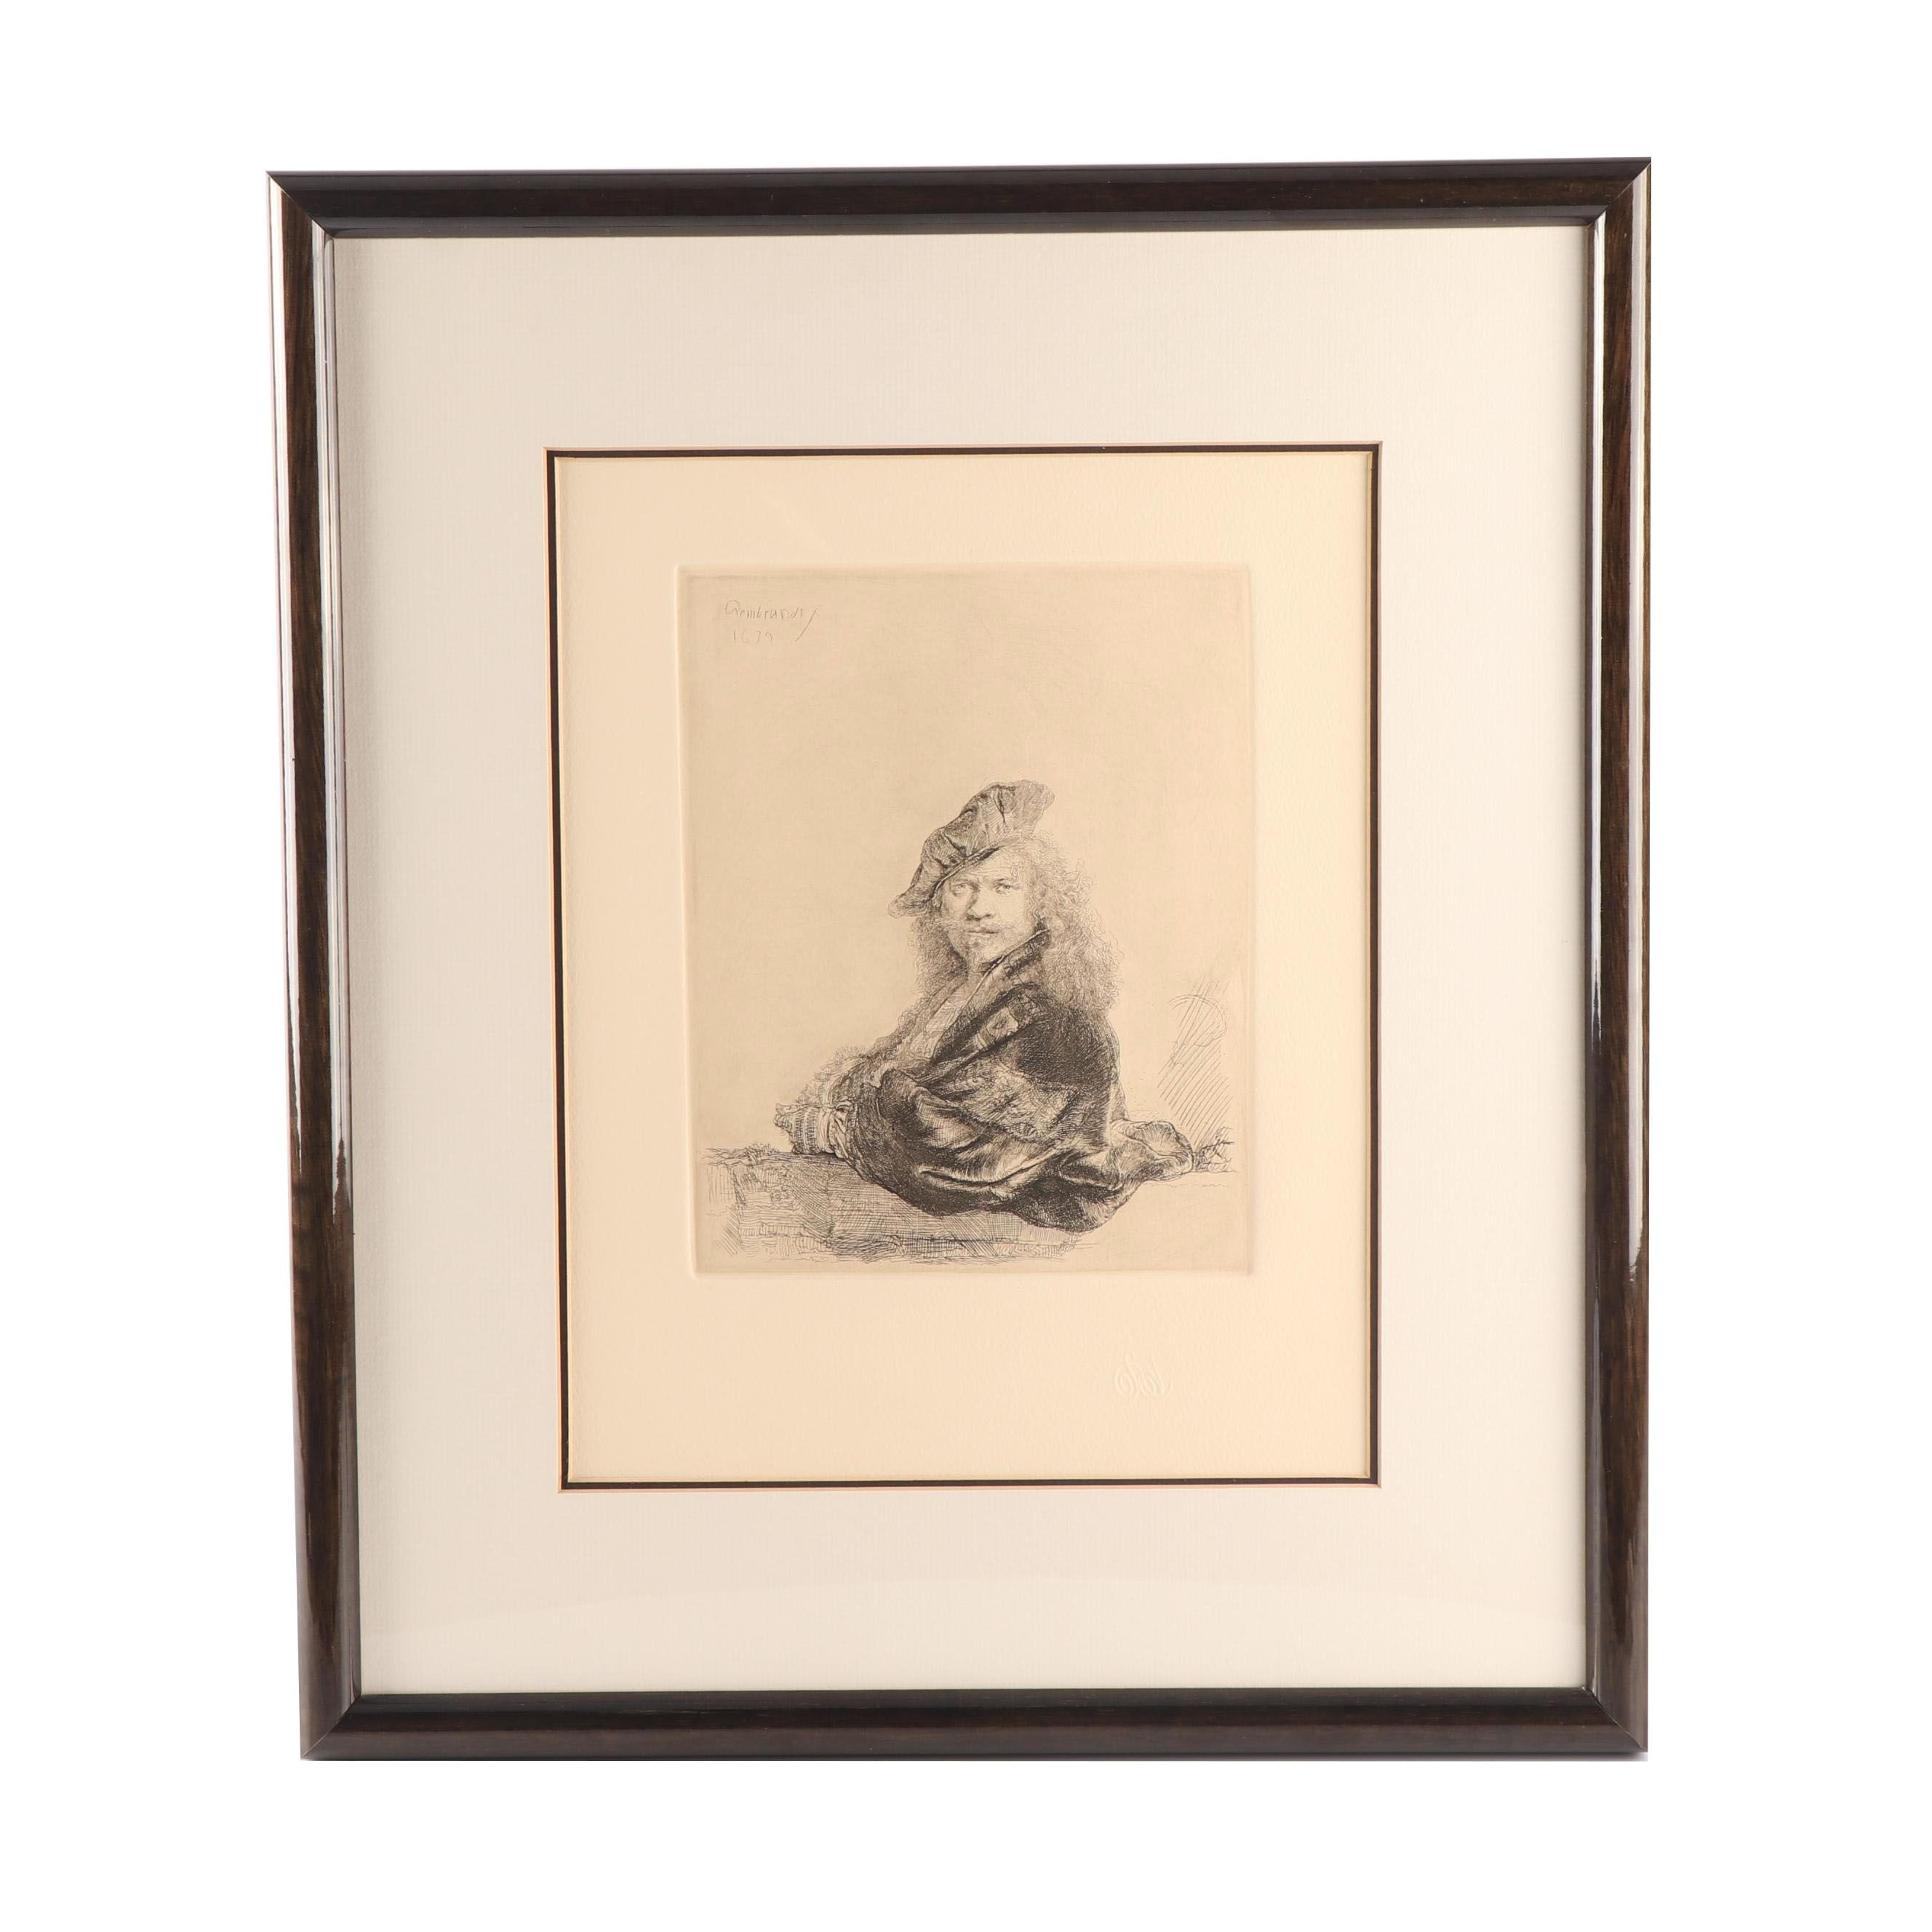 """Armand Durand Etching after Rembrandt """"Self Portrait Leaning on a Stone Sill"""""""